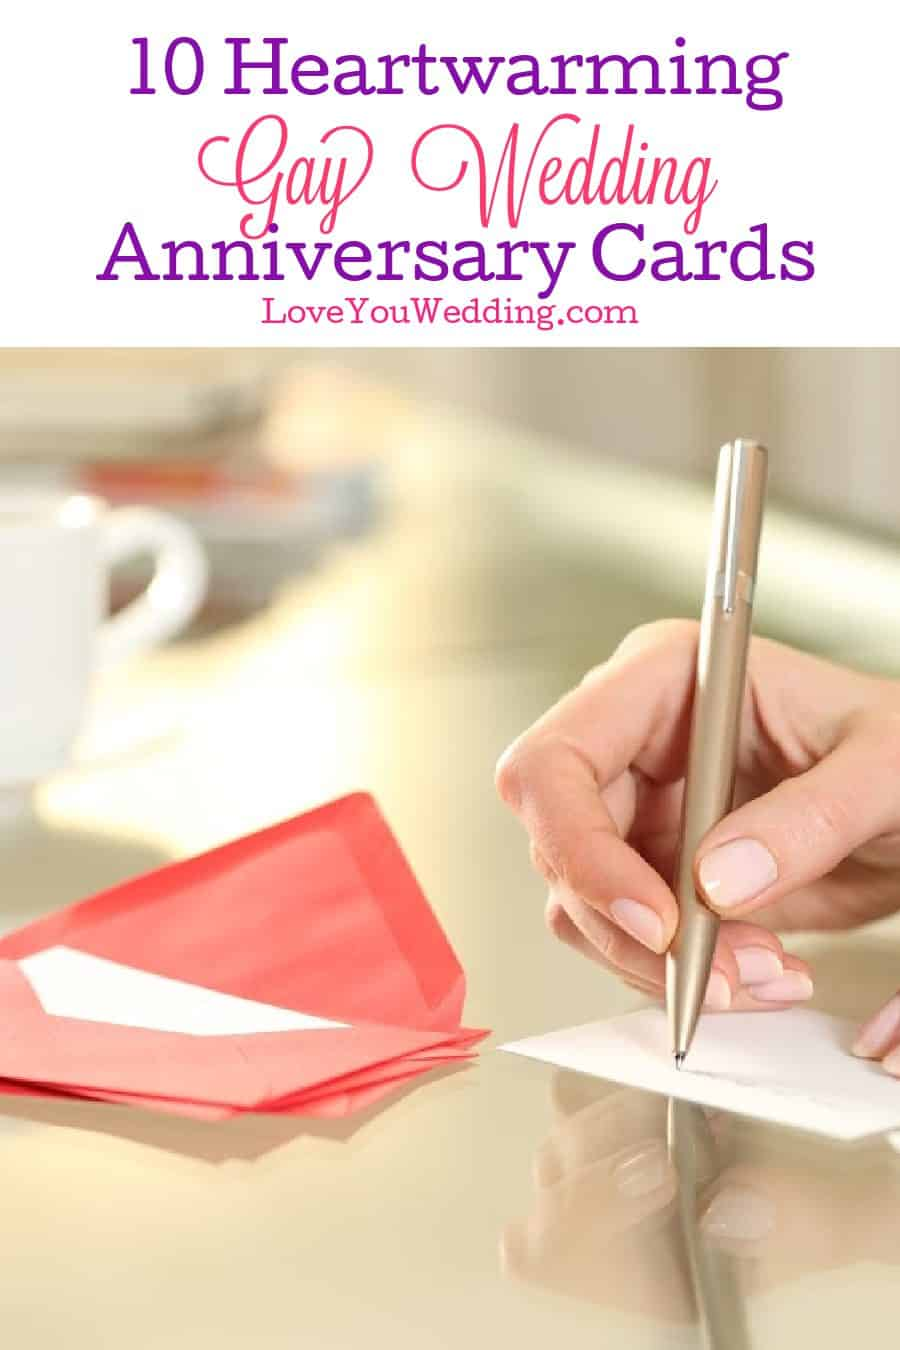 Searching for some amazing gay wedding anniversary cards for your favorite same-sex couples? Check out these 10 heartwarming ideas!